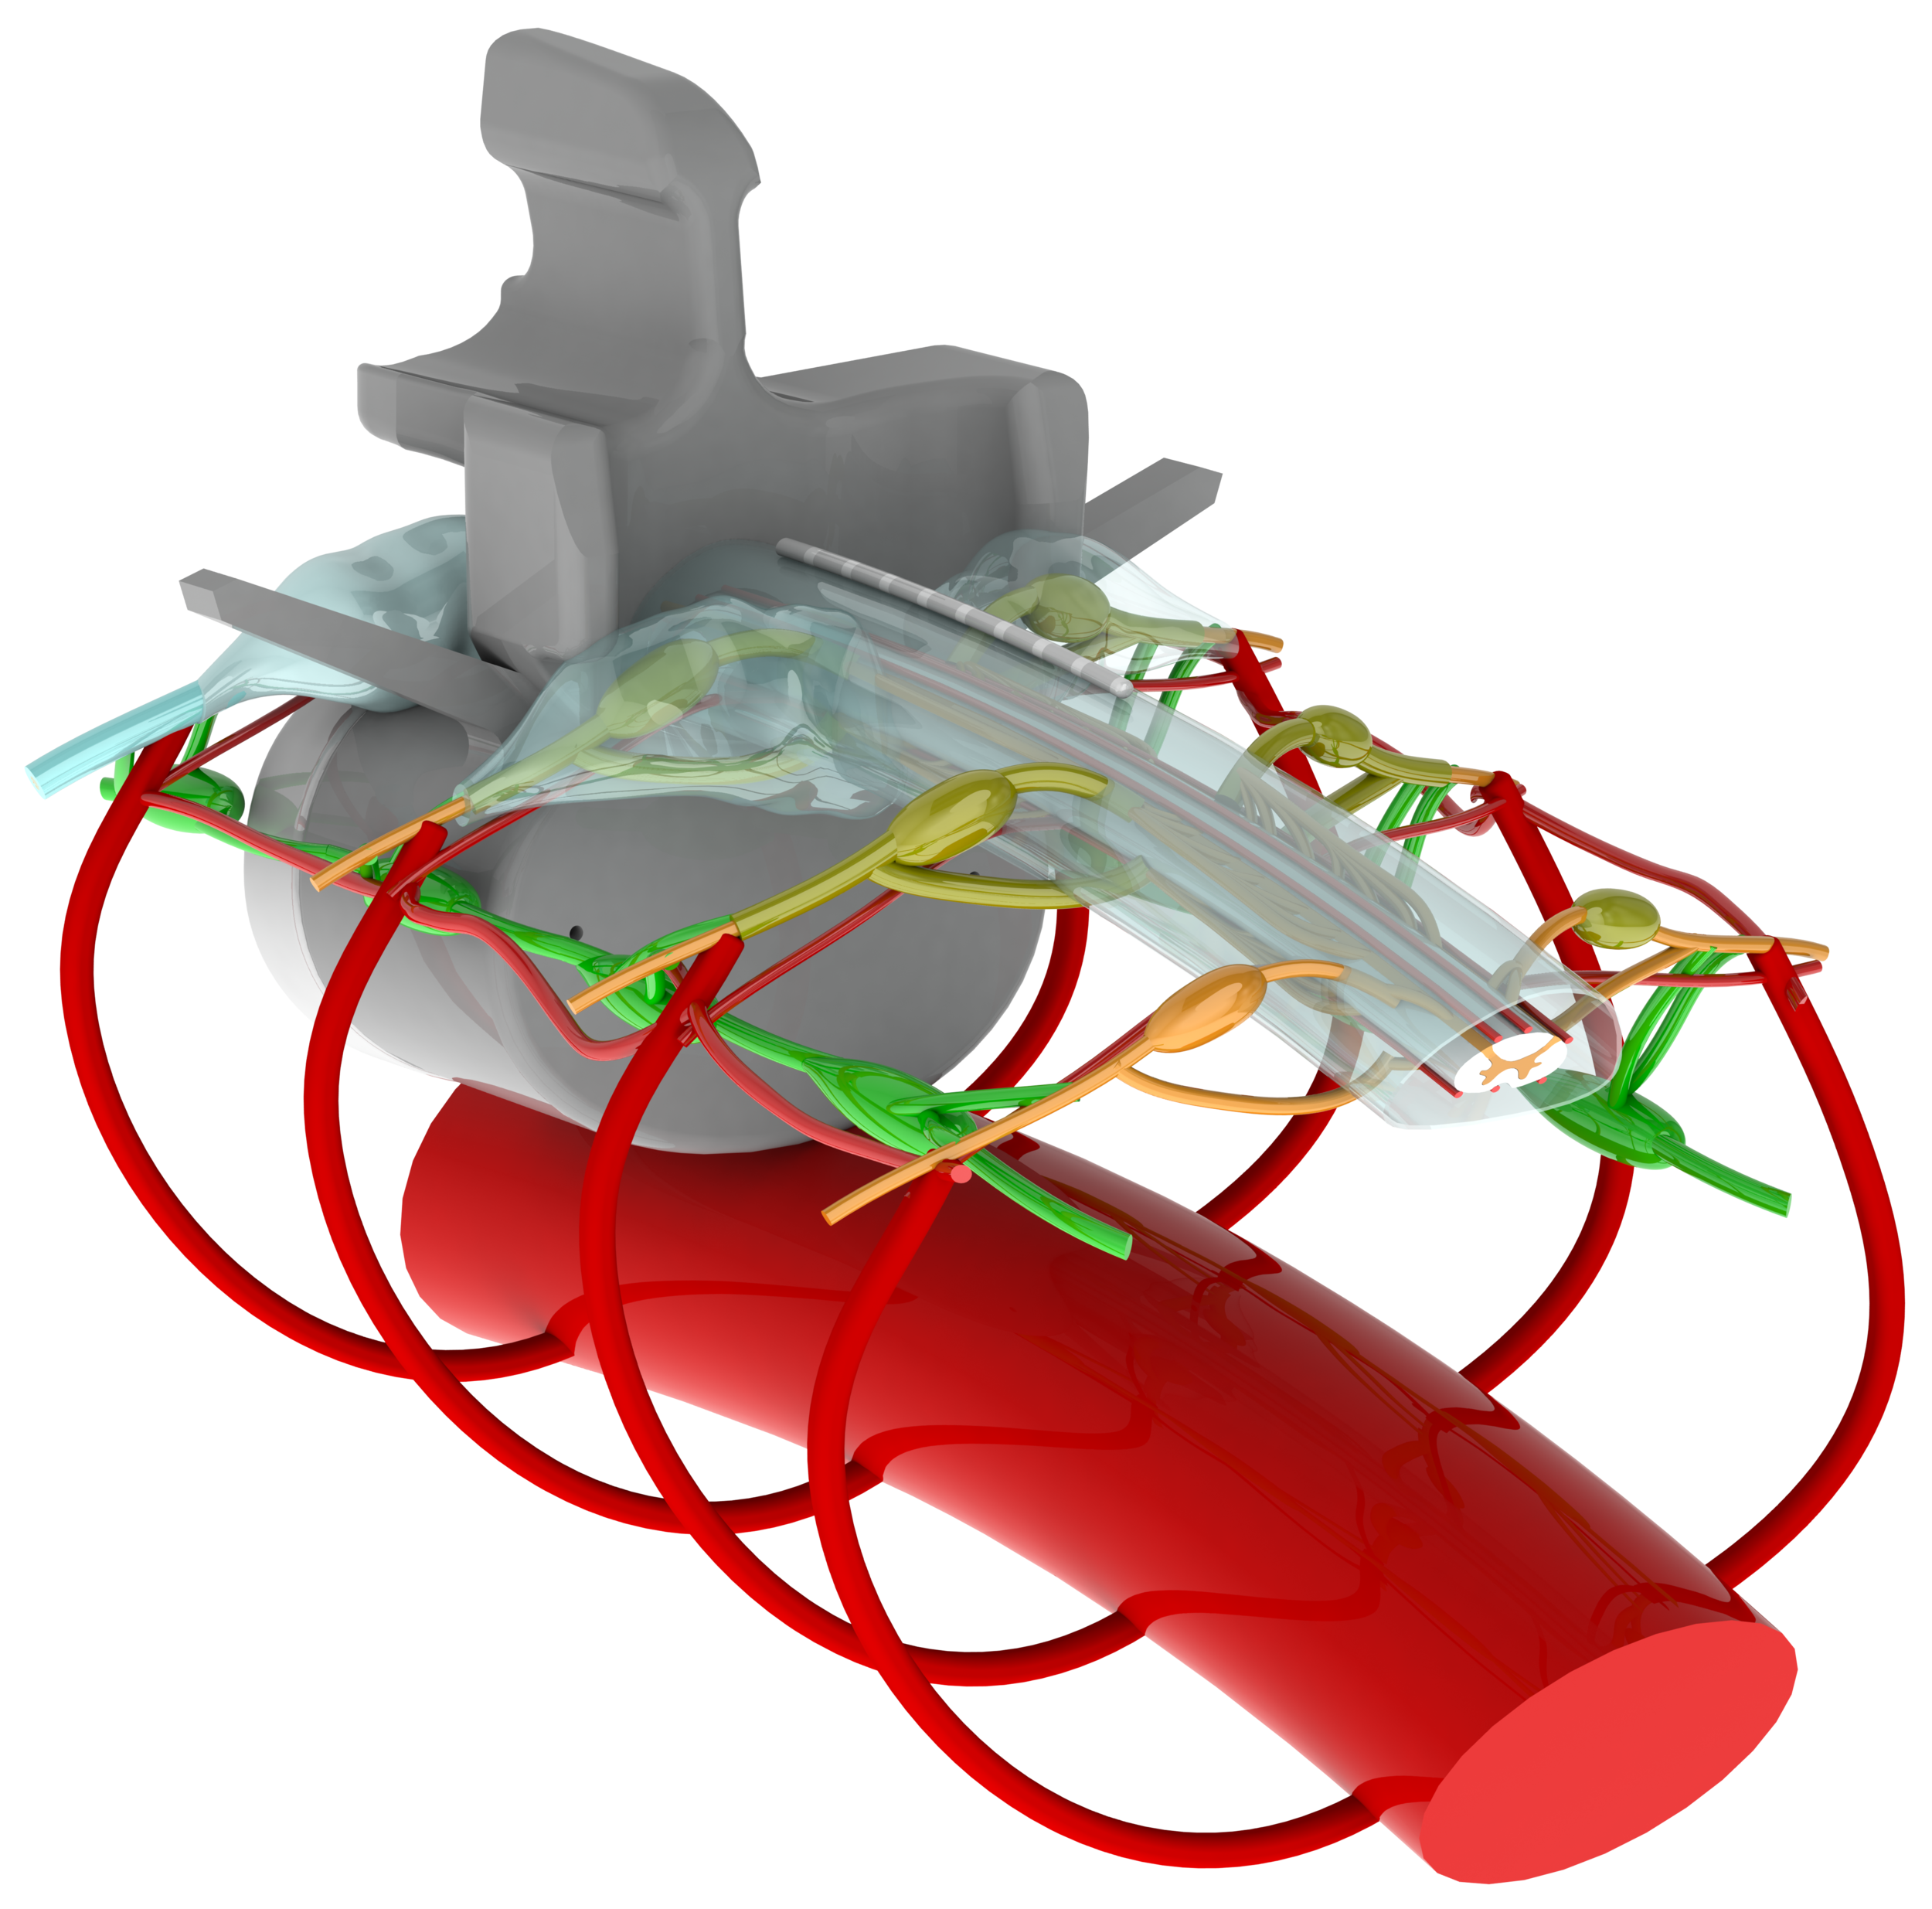 Realistic Anatomically Detailed Open-source Spinal Cord Stimulation (RADO SCS) Model - An Open-source resources for downloading RADO SCS model for computational modeling of SCS, tsDCS, DRGS, etc.